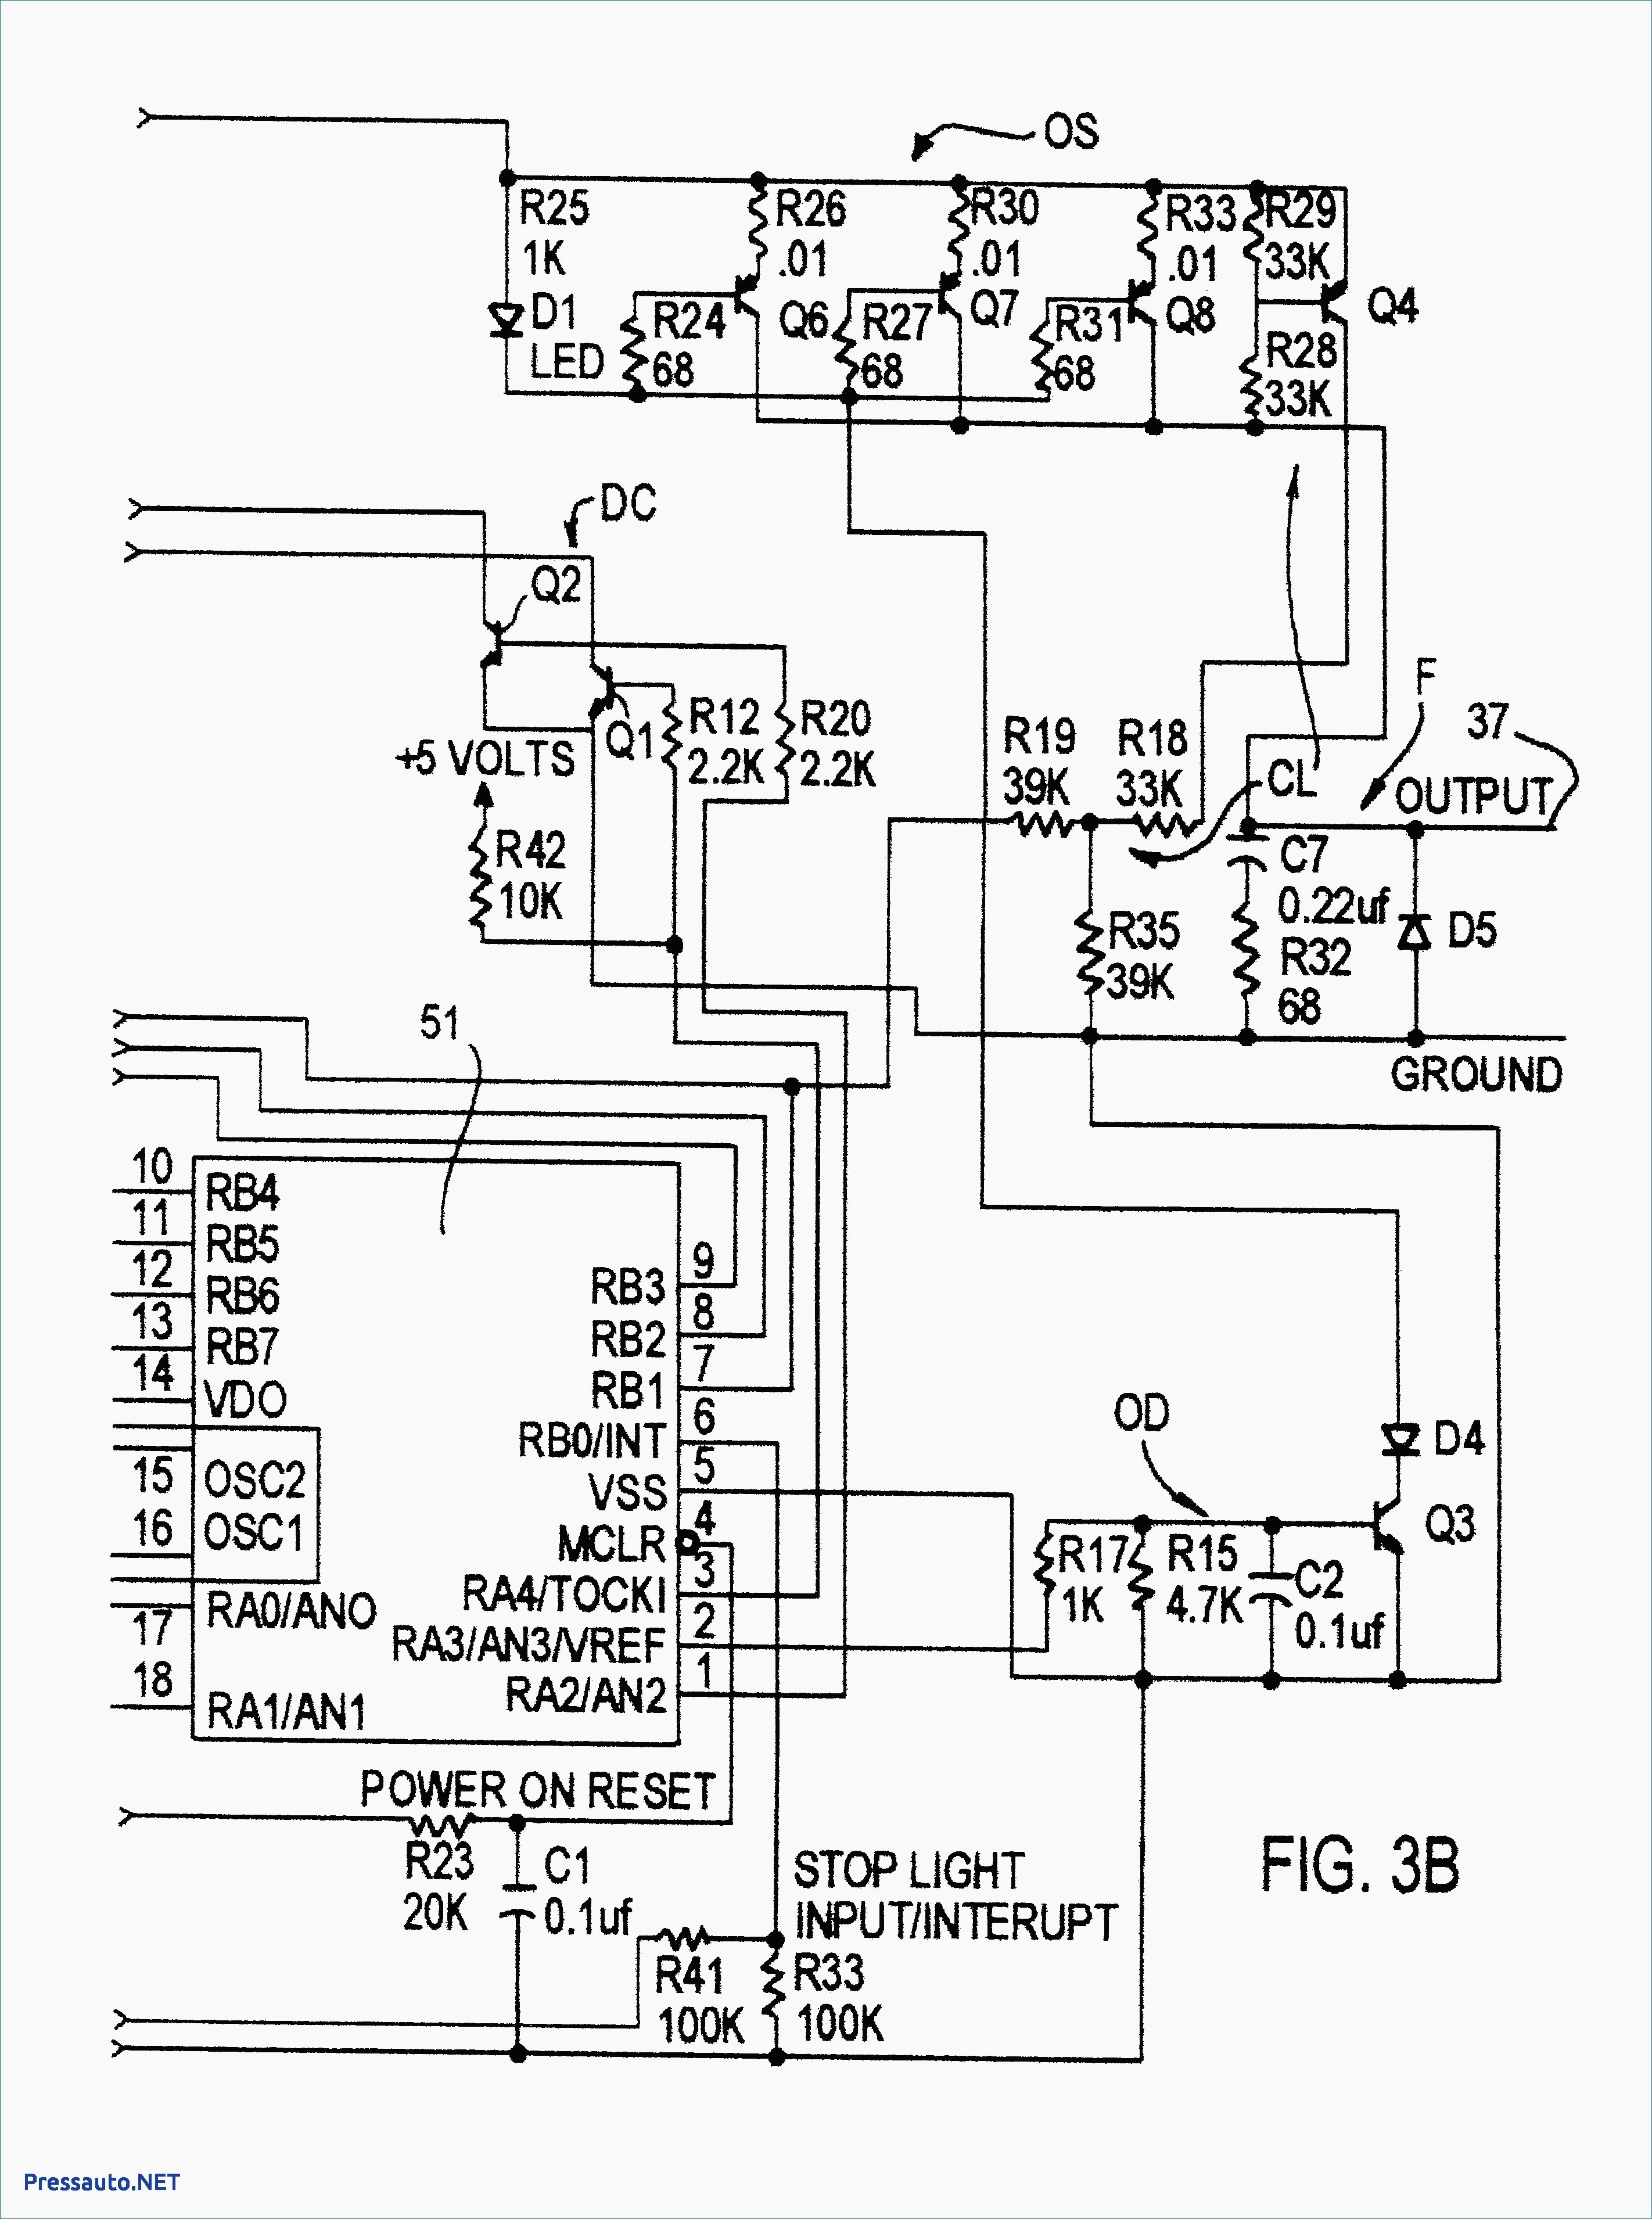 2007 Buick Lucerne Engine Diagram 2000 Buick Regal Automatic Transmission Diagrams  Buick Wiring Of 2007 Buick